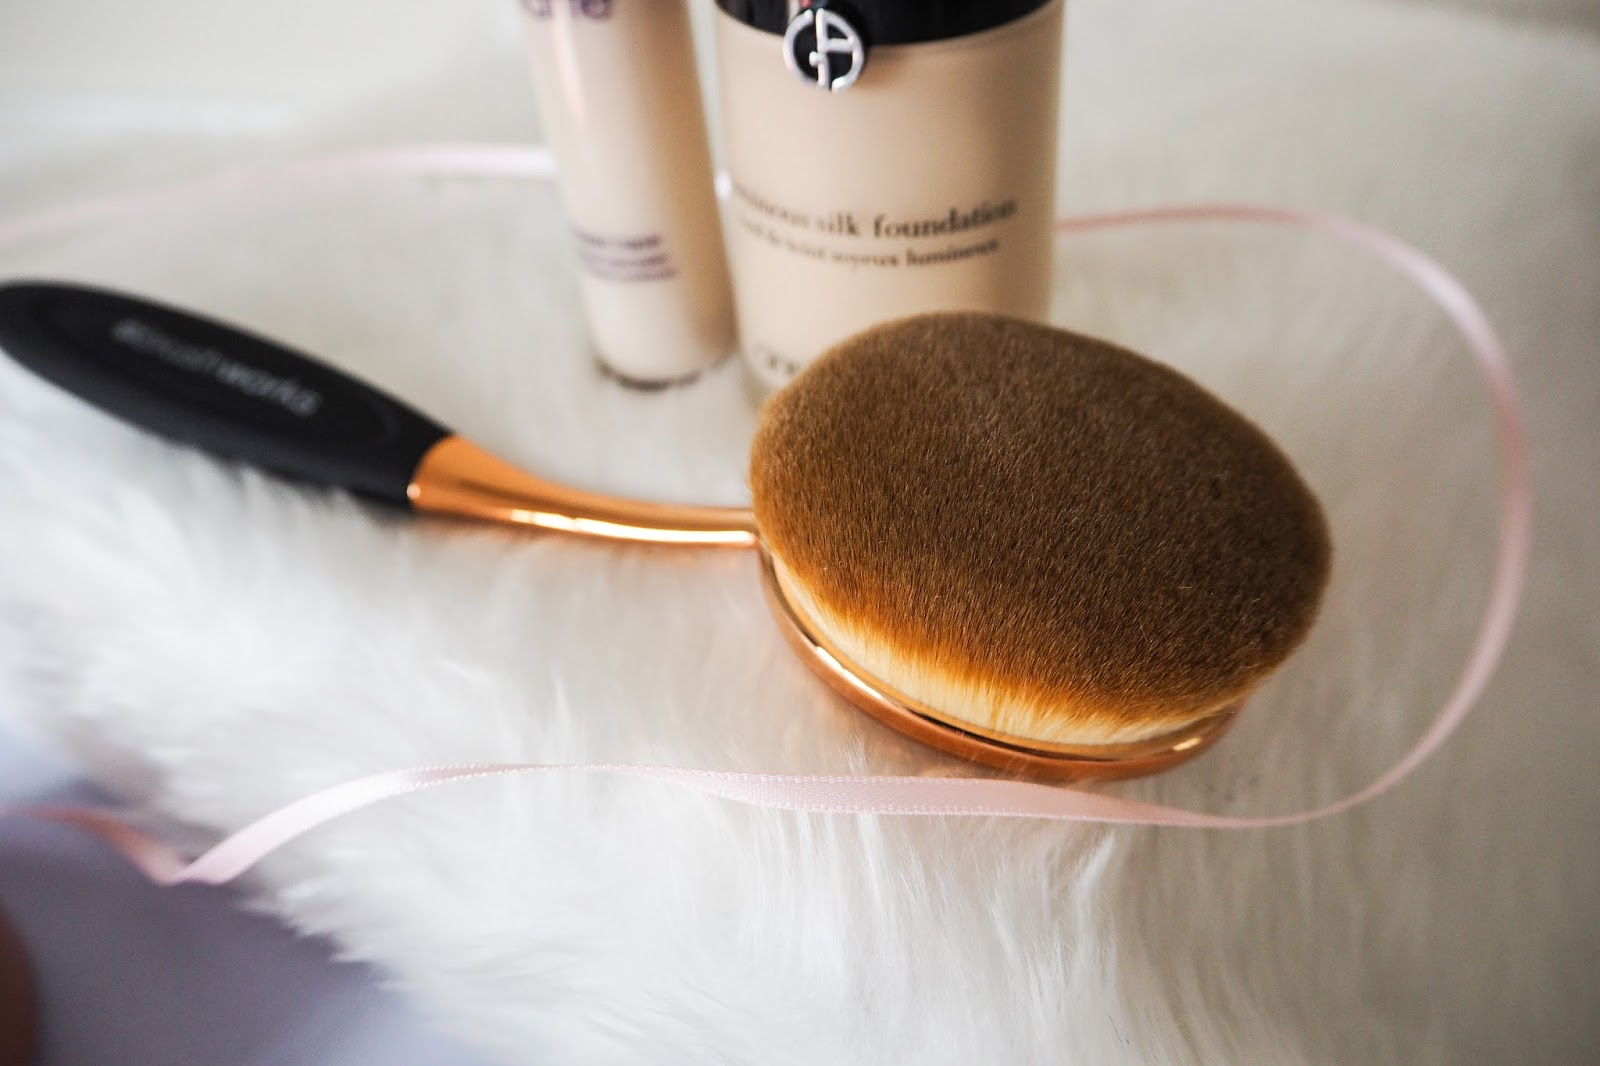 Large oval brush for foundation, contour and bronzer